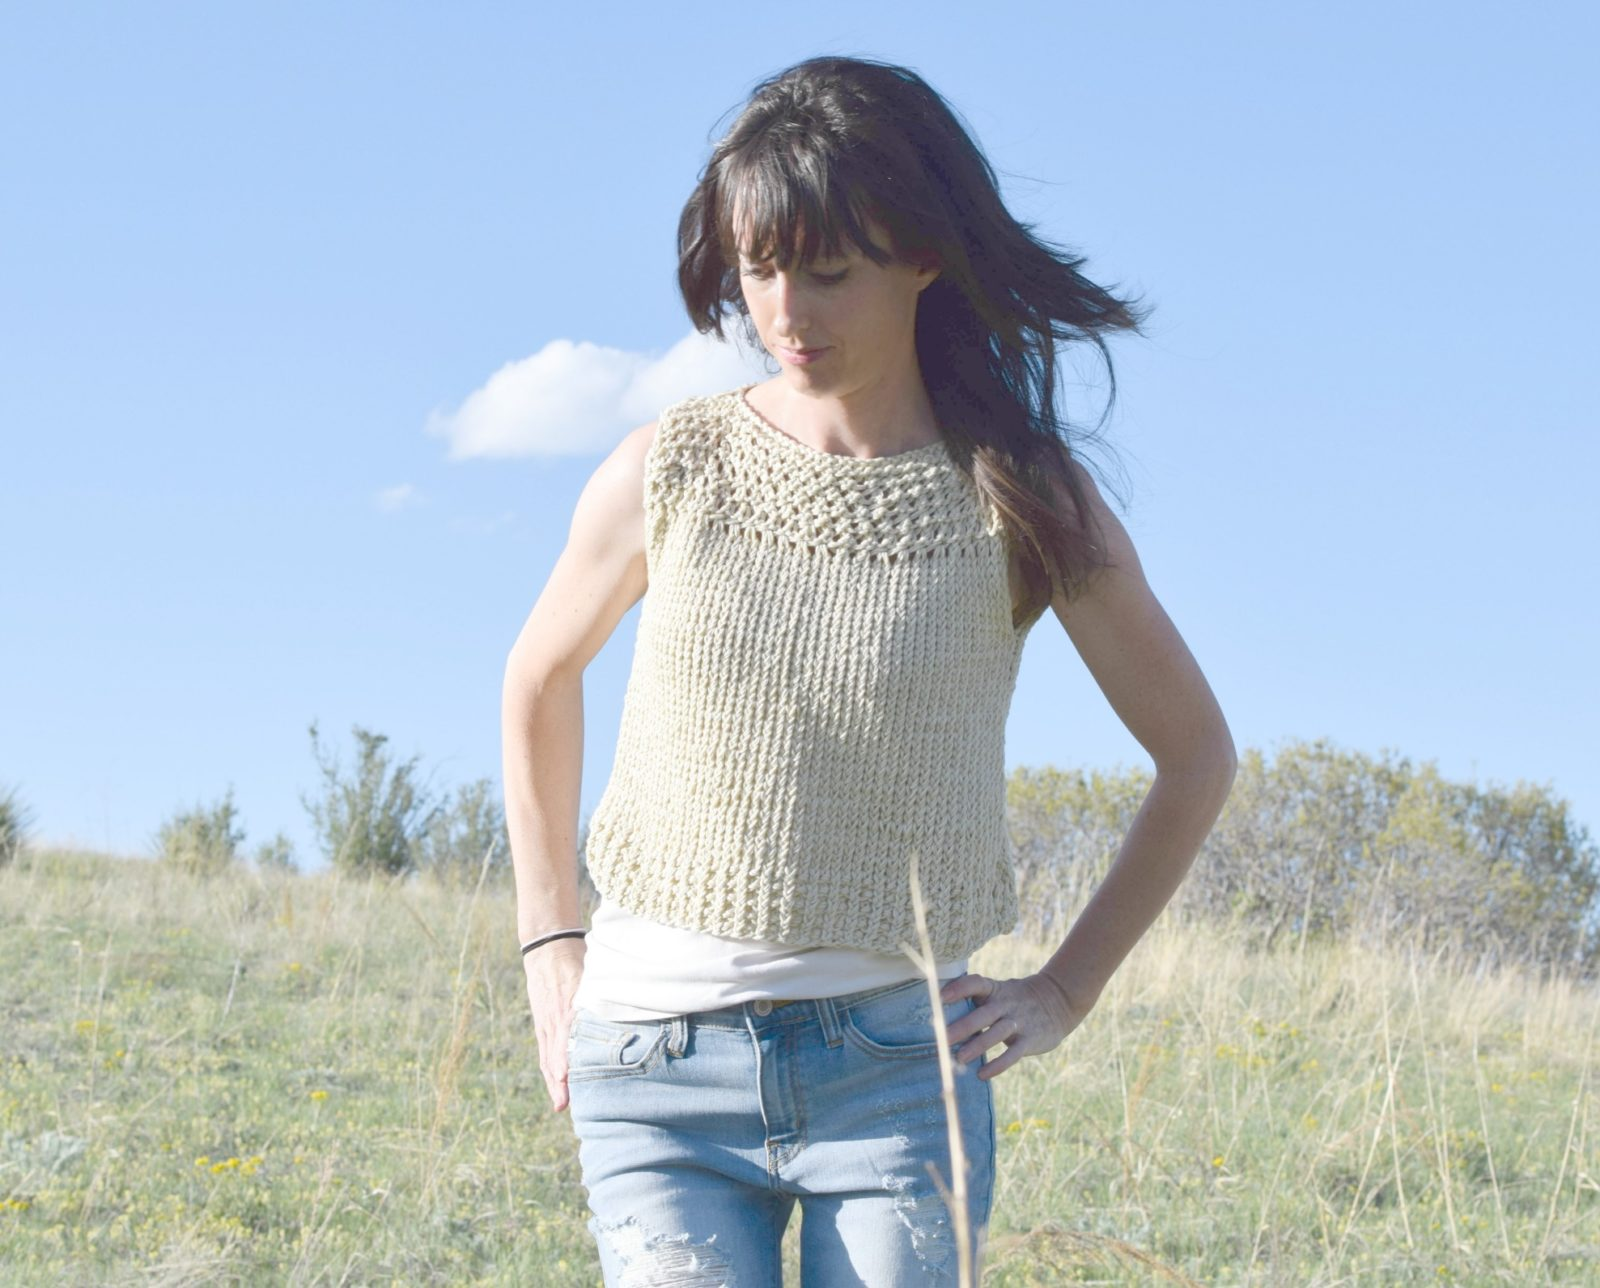 Knit Top Patterns : Summer Vacation Knit Top Pattern   Mama In A Stitch